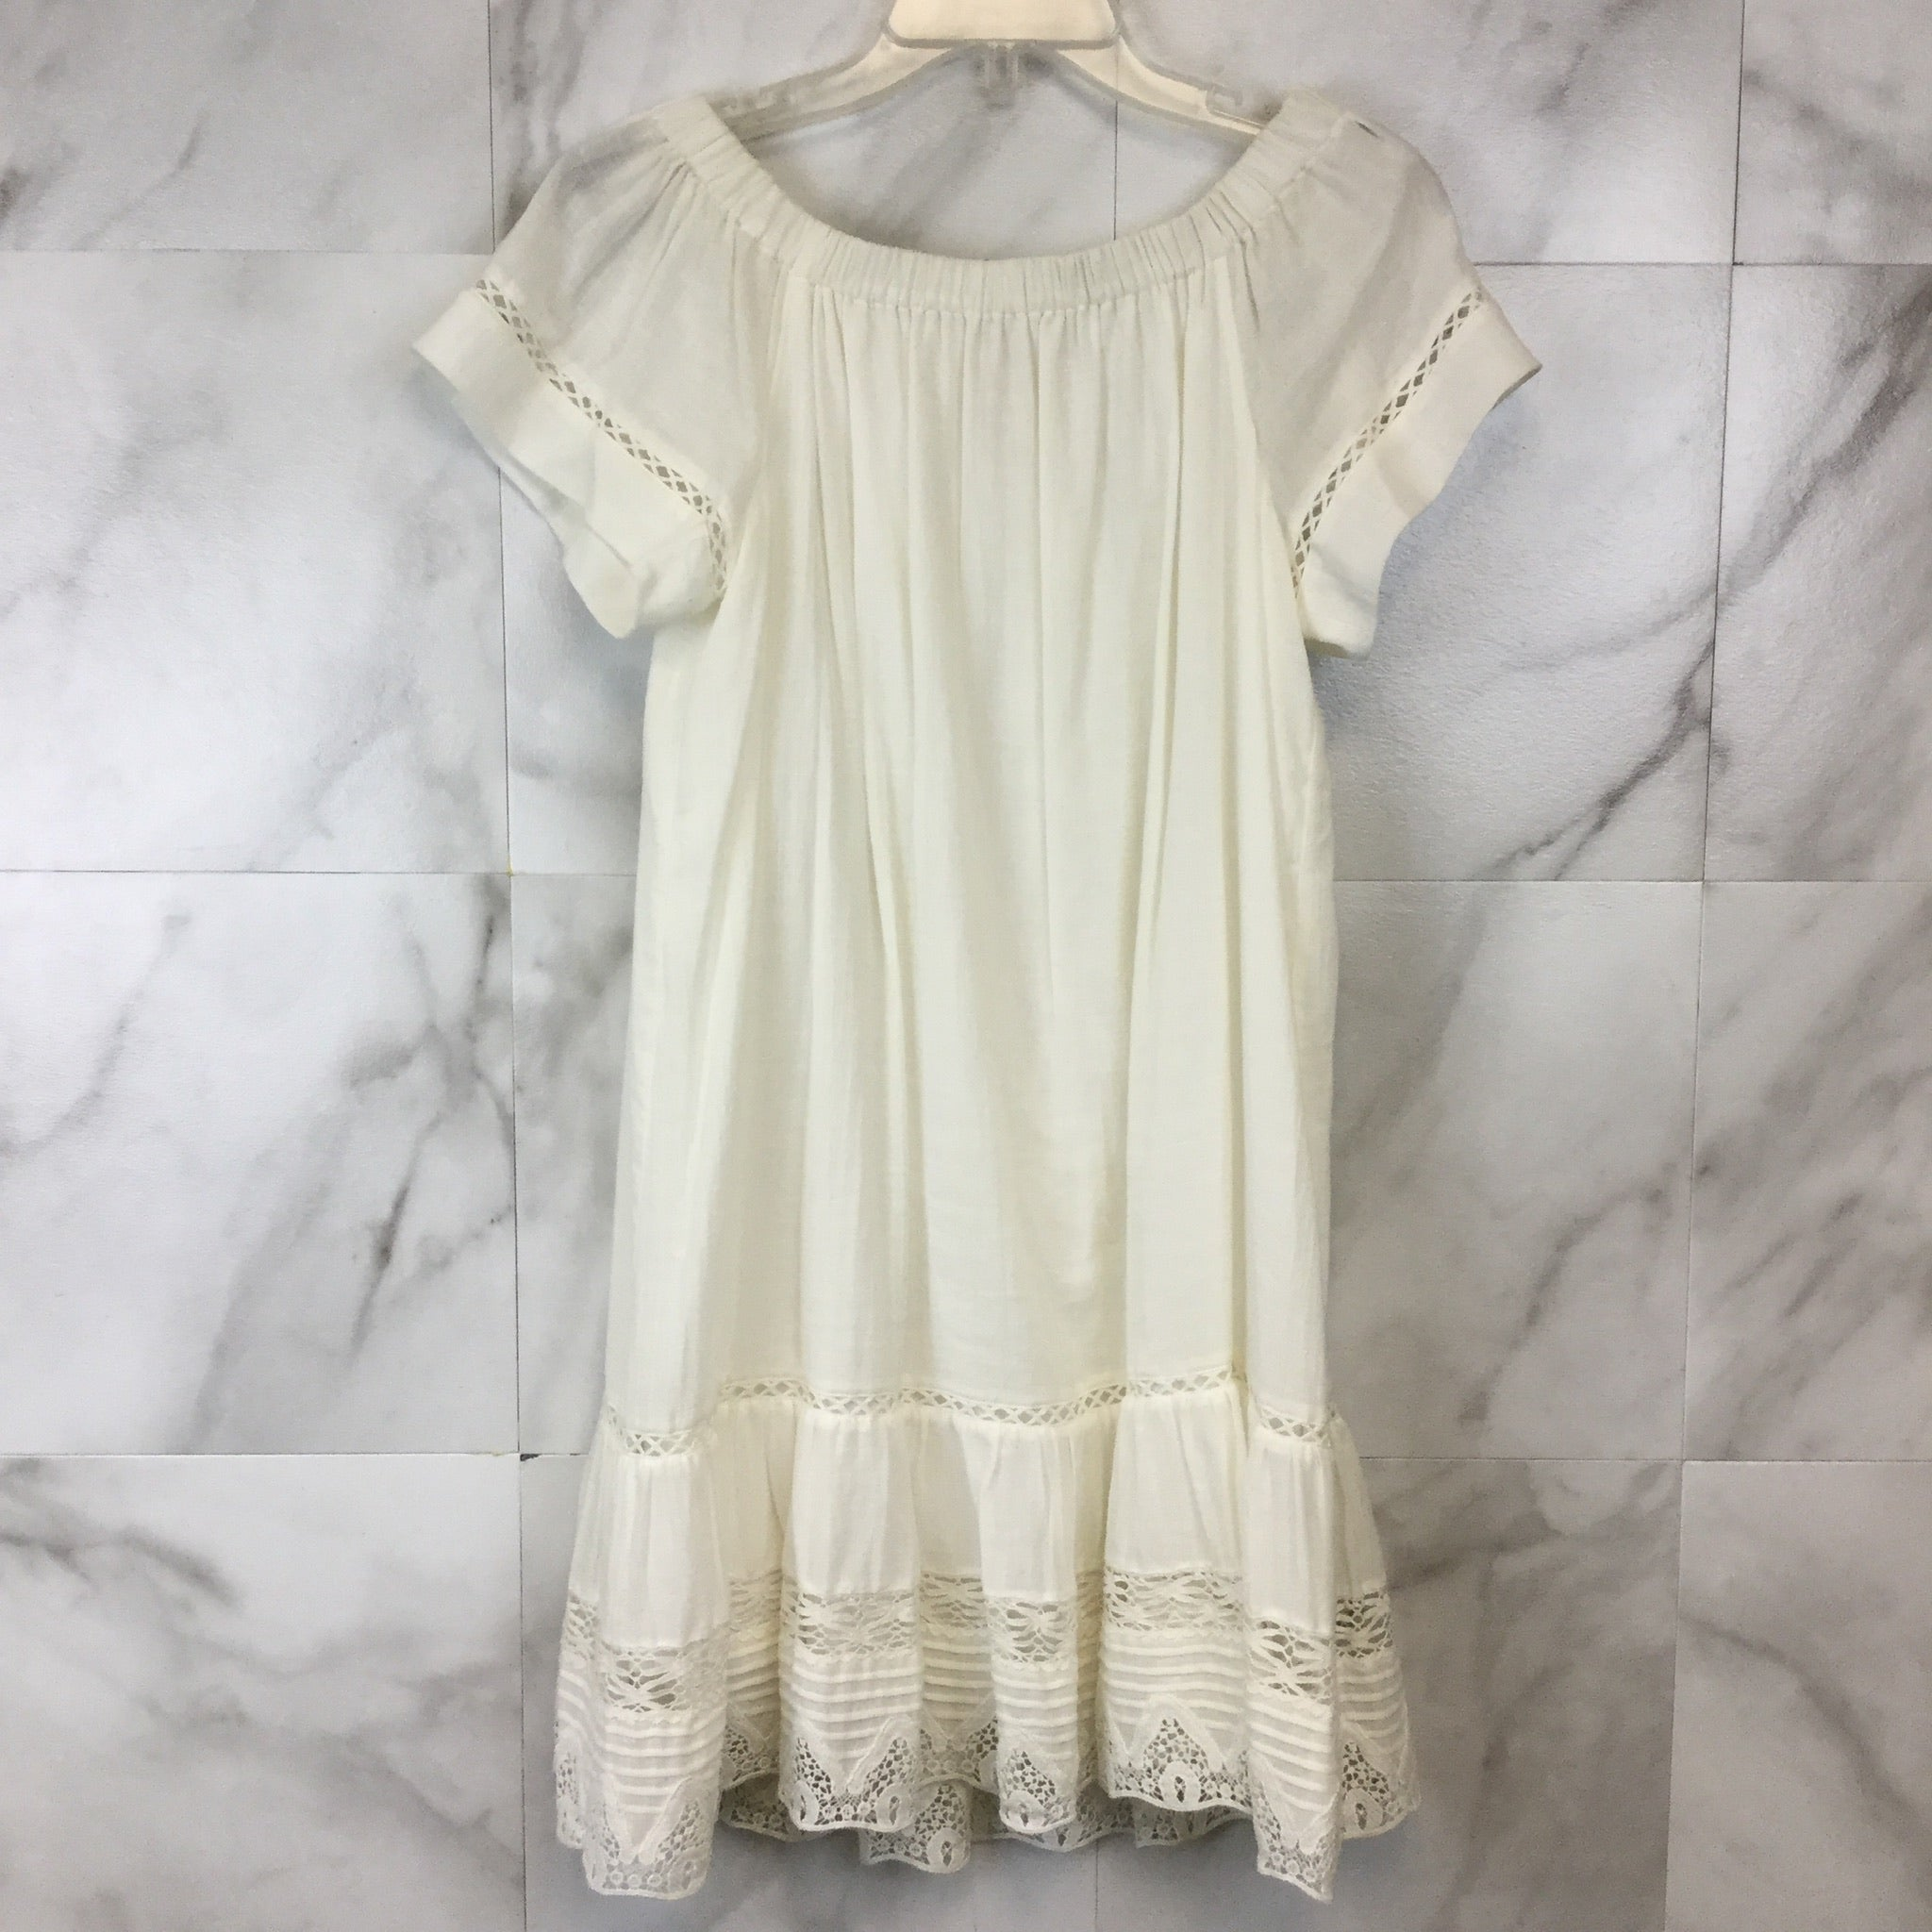 Rebecca Taylor Off Shoulder Cotton Dress - size 2